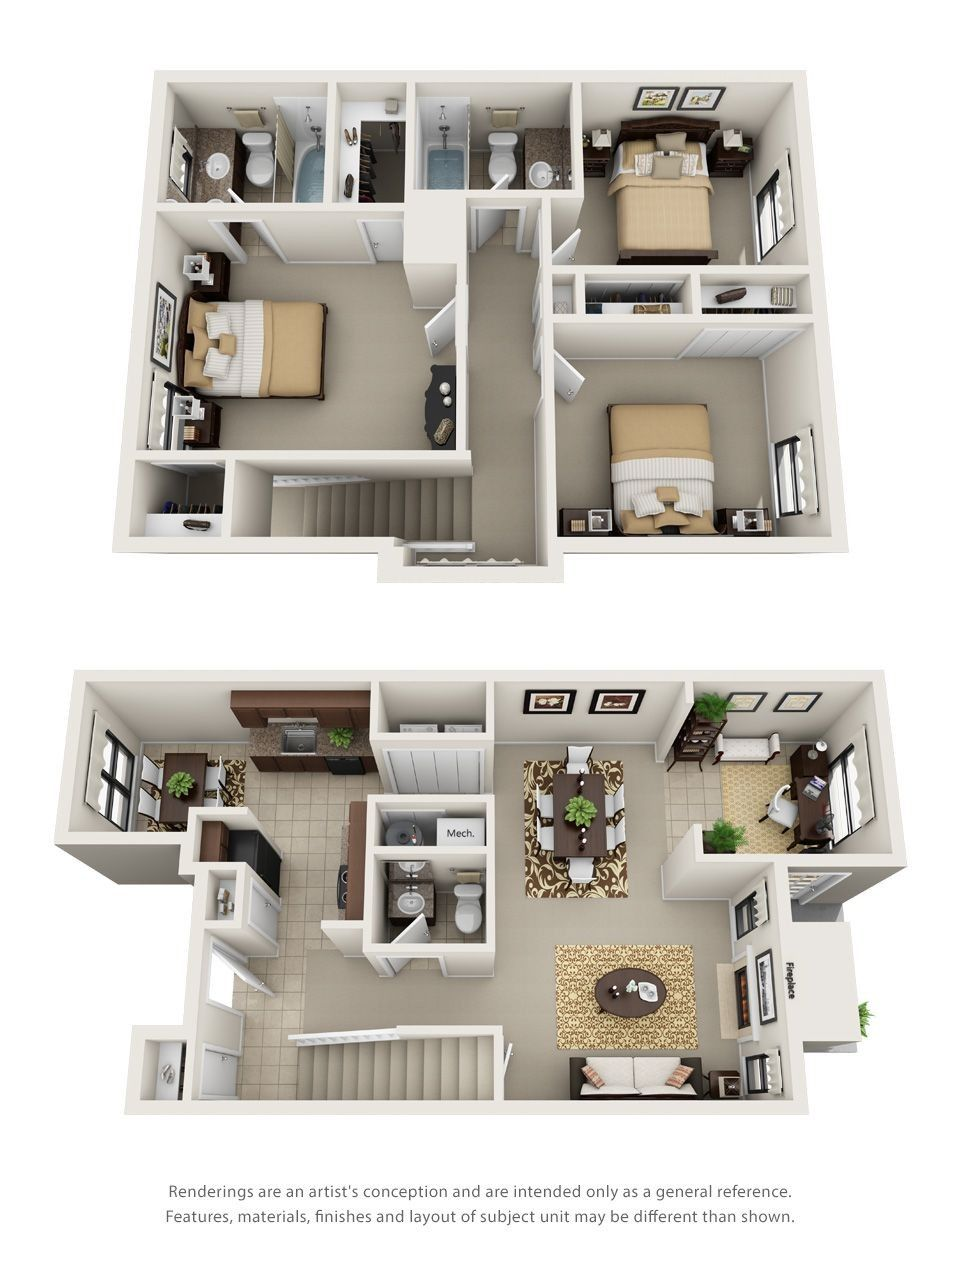 Pin By Rachel On Sims In 2020 Apartment Floor Plans Bedroom House Plans Apartment Design